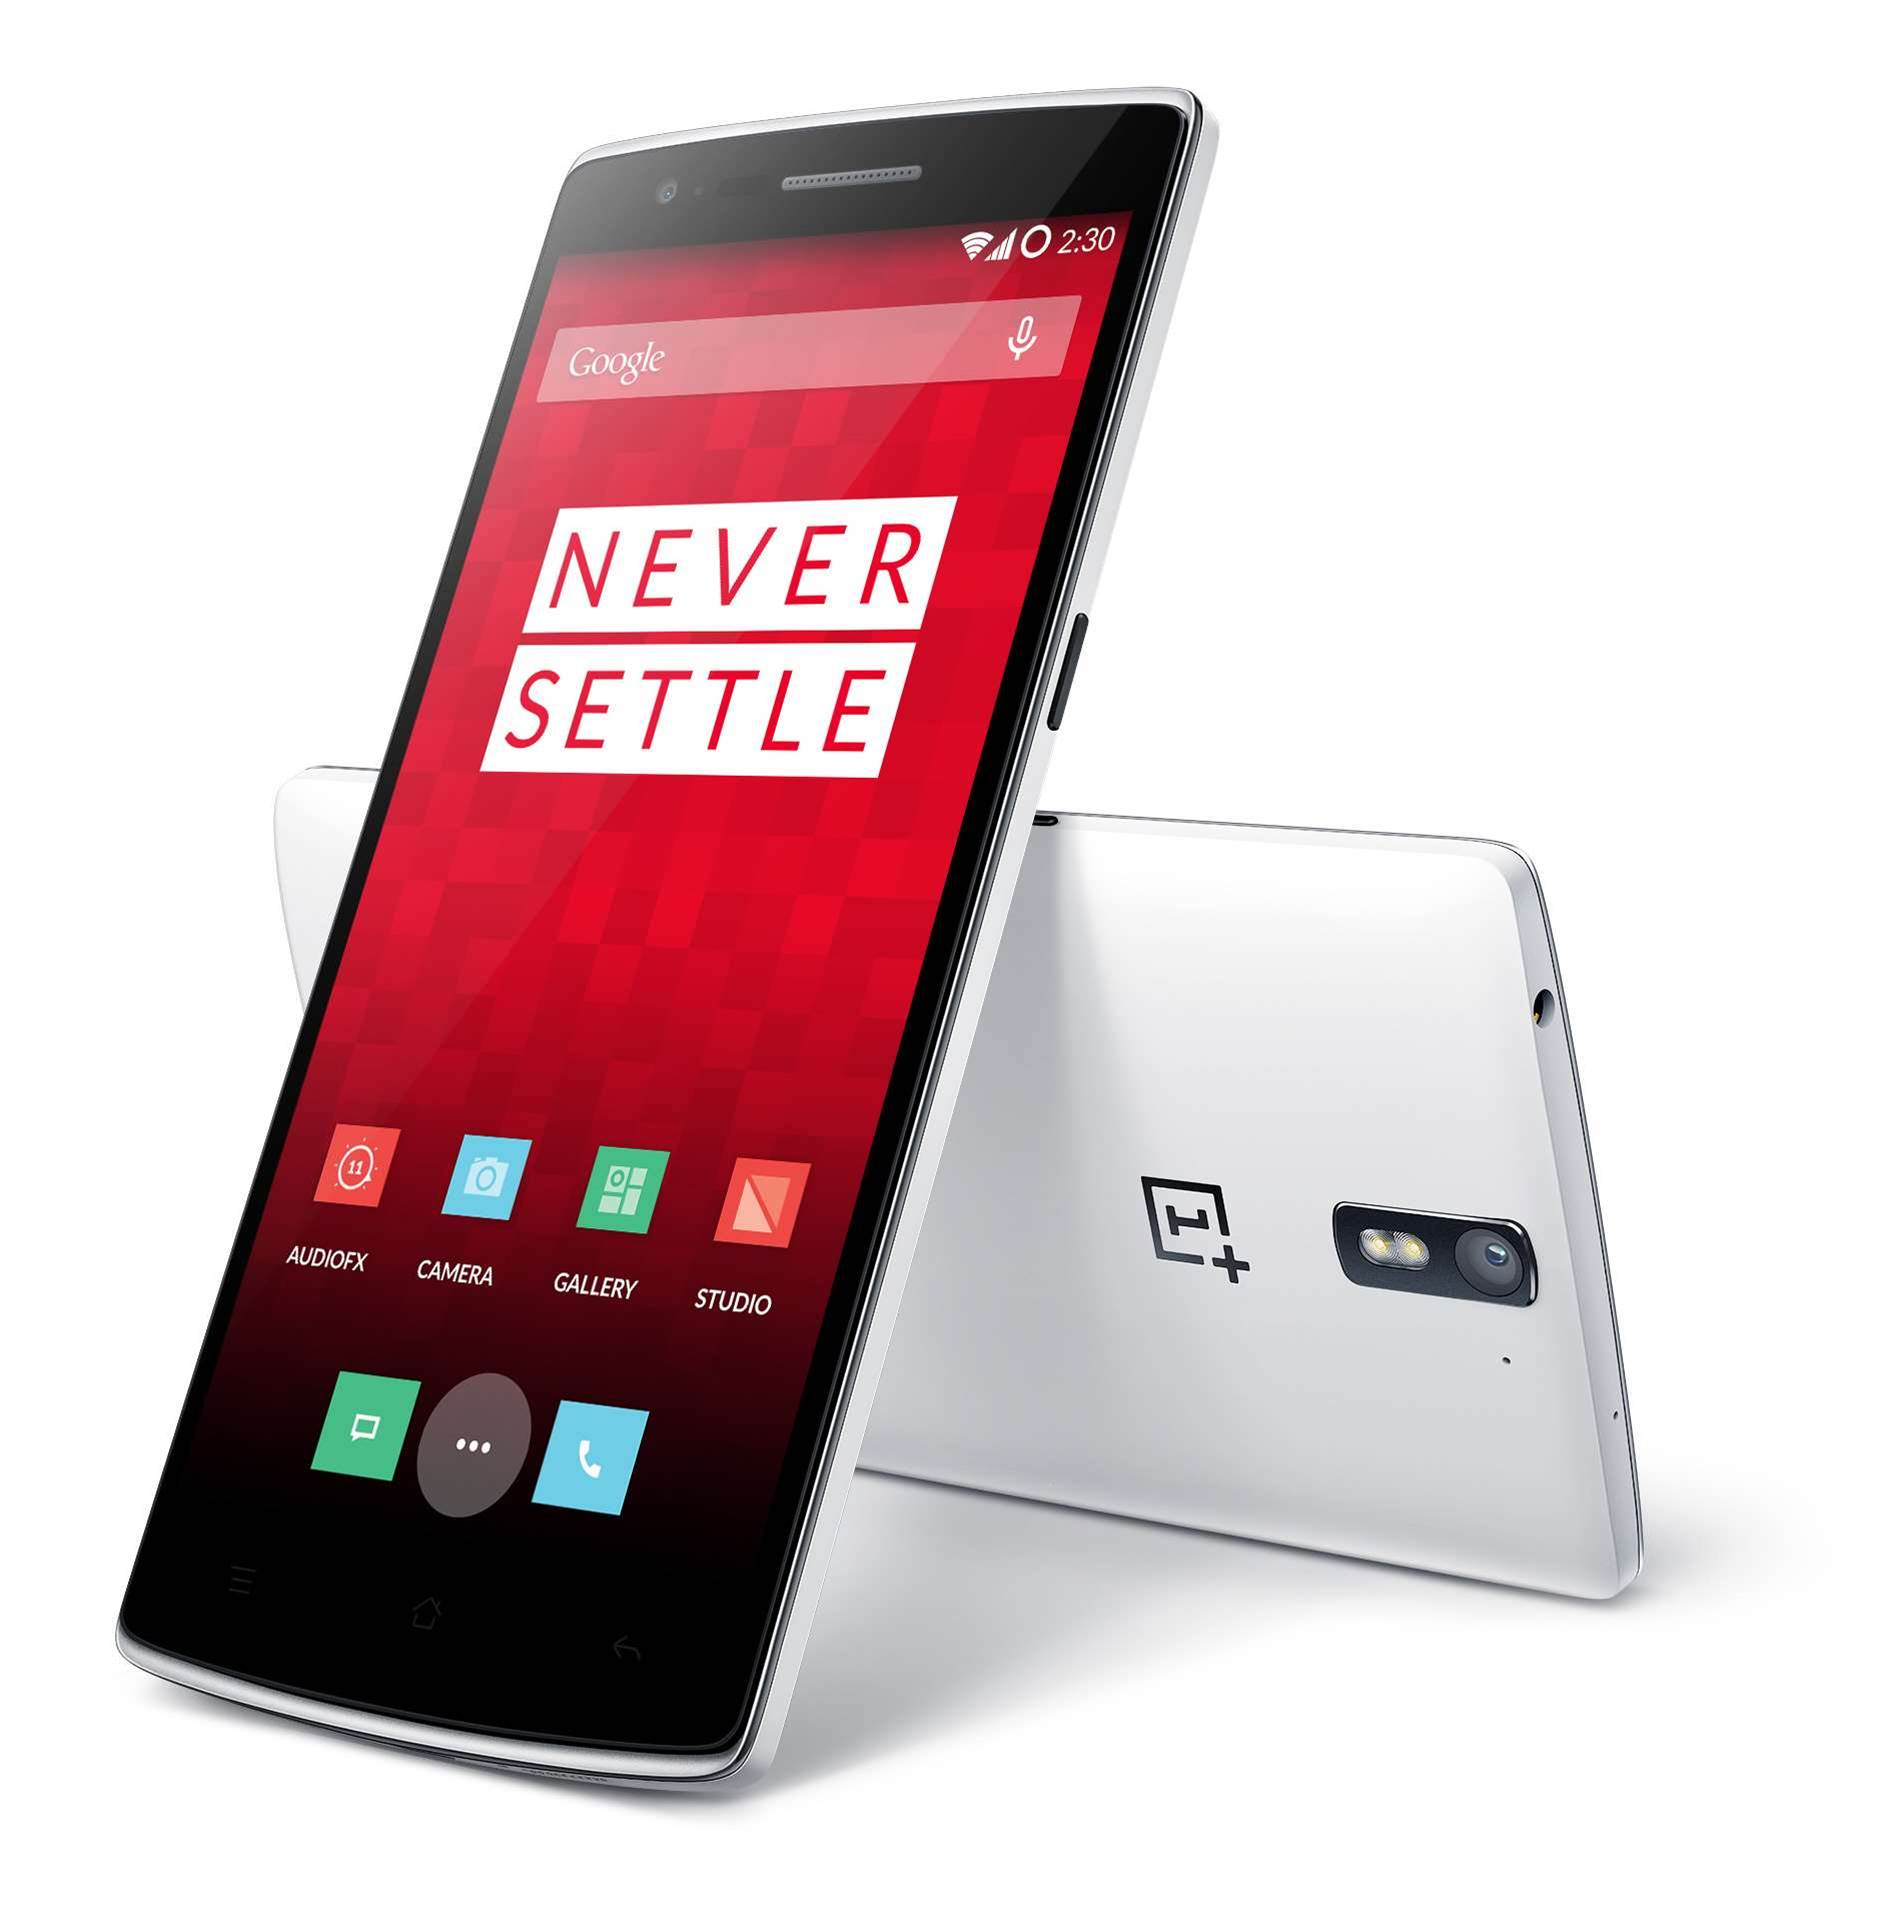 OpenSSL flaws delay OnePlus One CyanogenMod phone